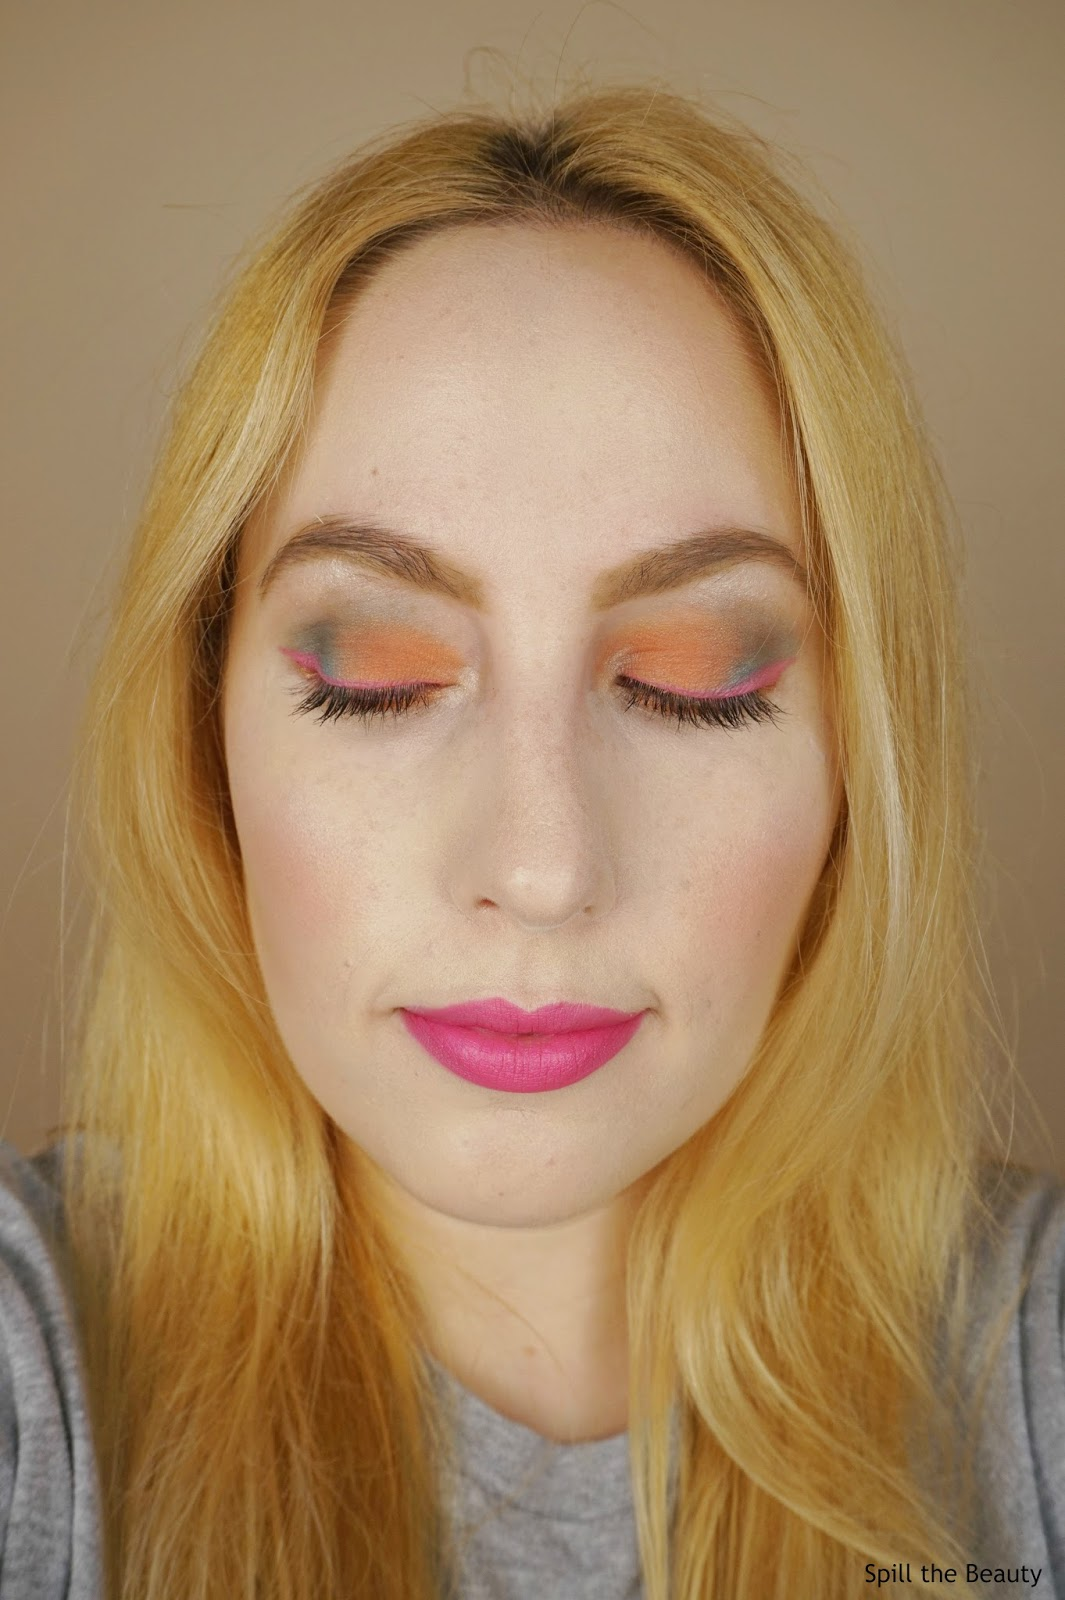 fotd pride 2017 too faced sugar pop palette mac  embrace me